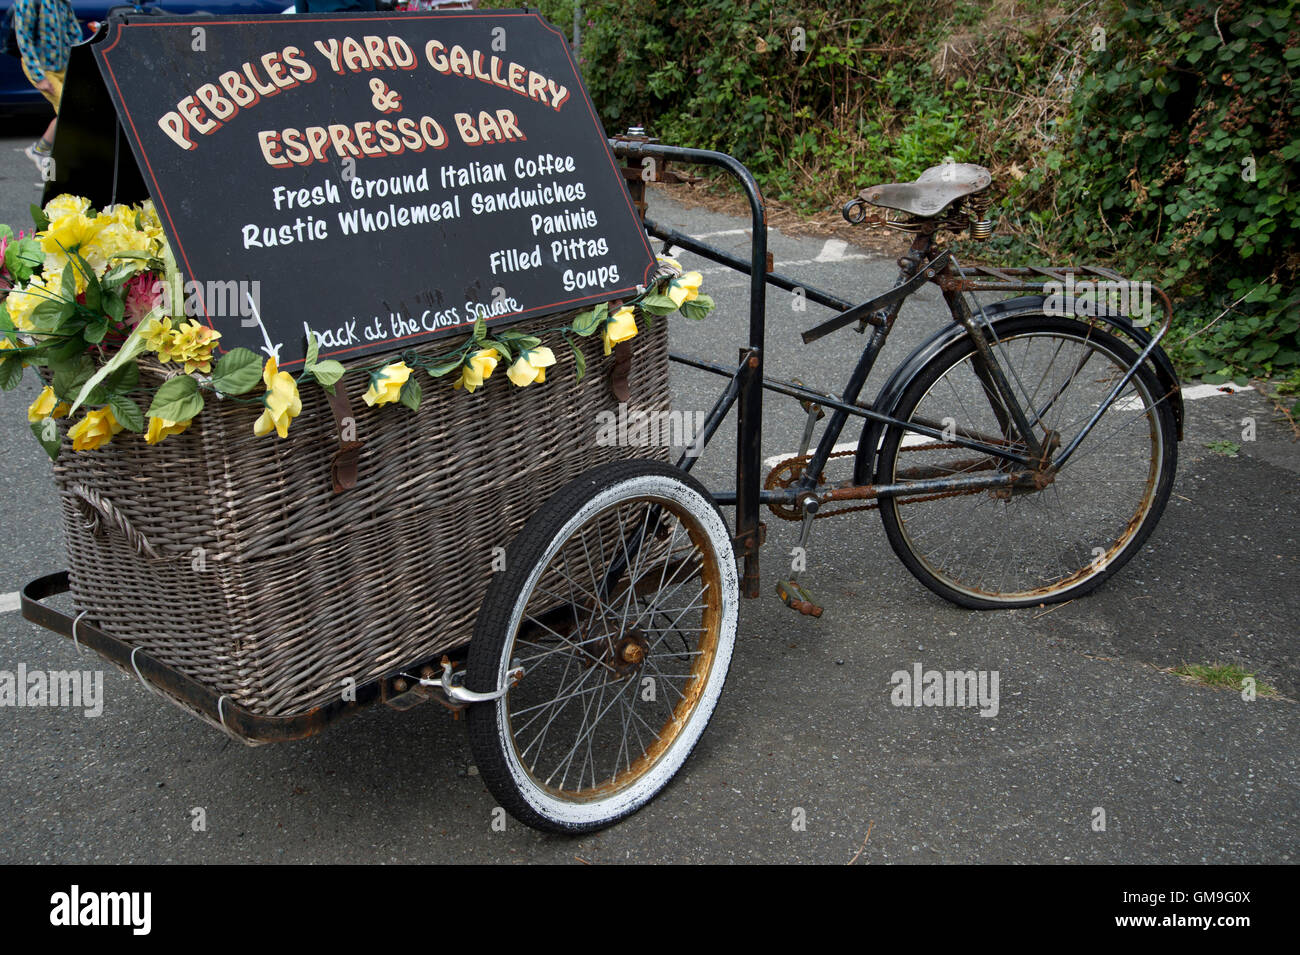 Pays de Galles Pembrokeshire St David's. Publicité Location d'un café-bar Photo Stock